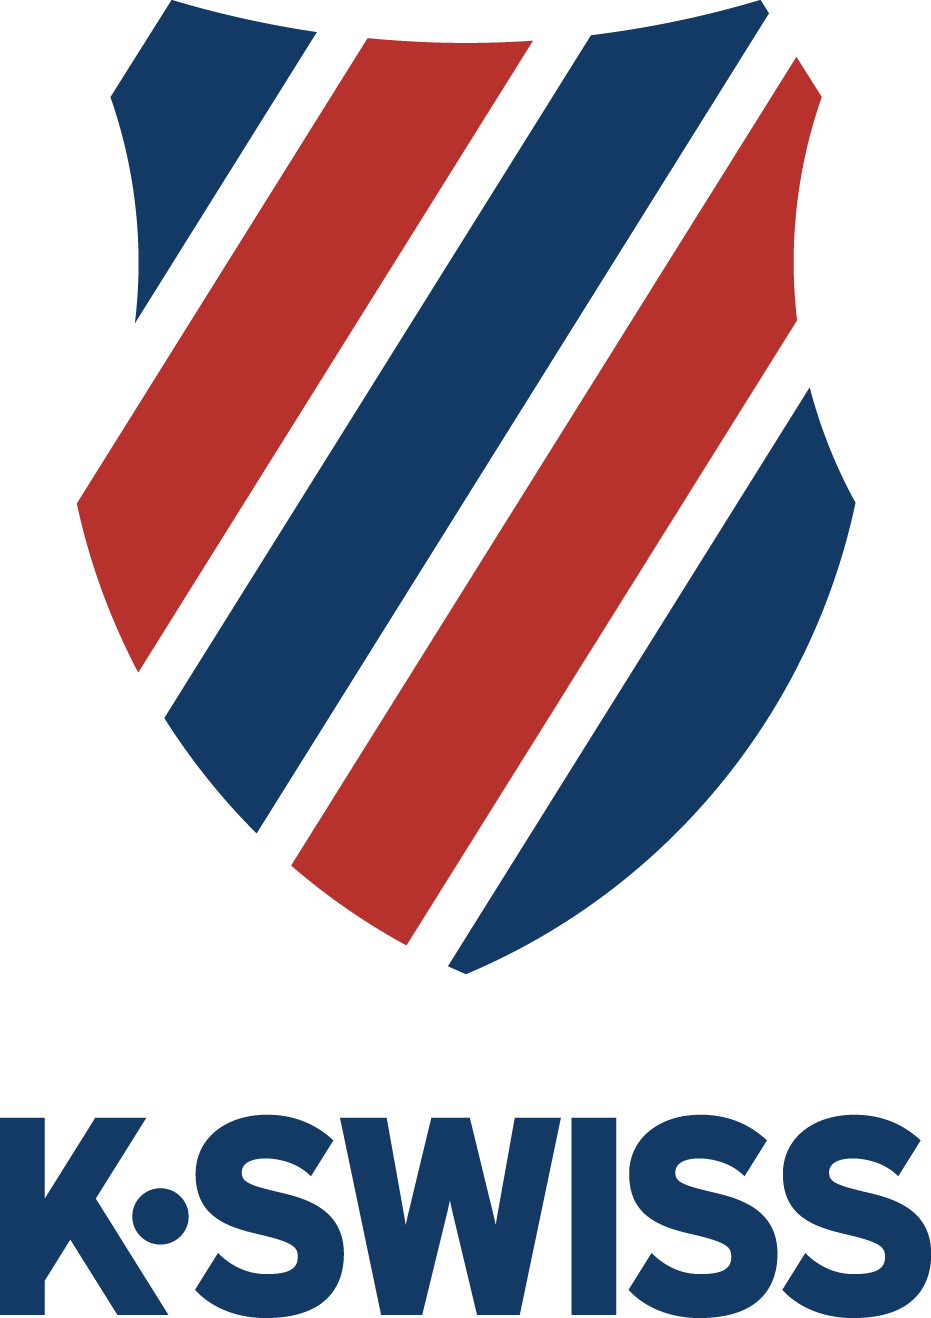 K-Swiss Logo - Image - K-Swiss.png | Logopedia | FANDOM powered by Wikia